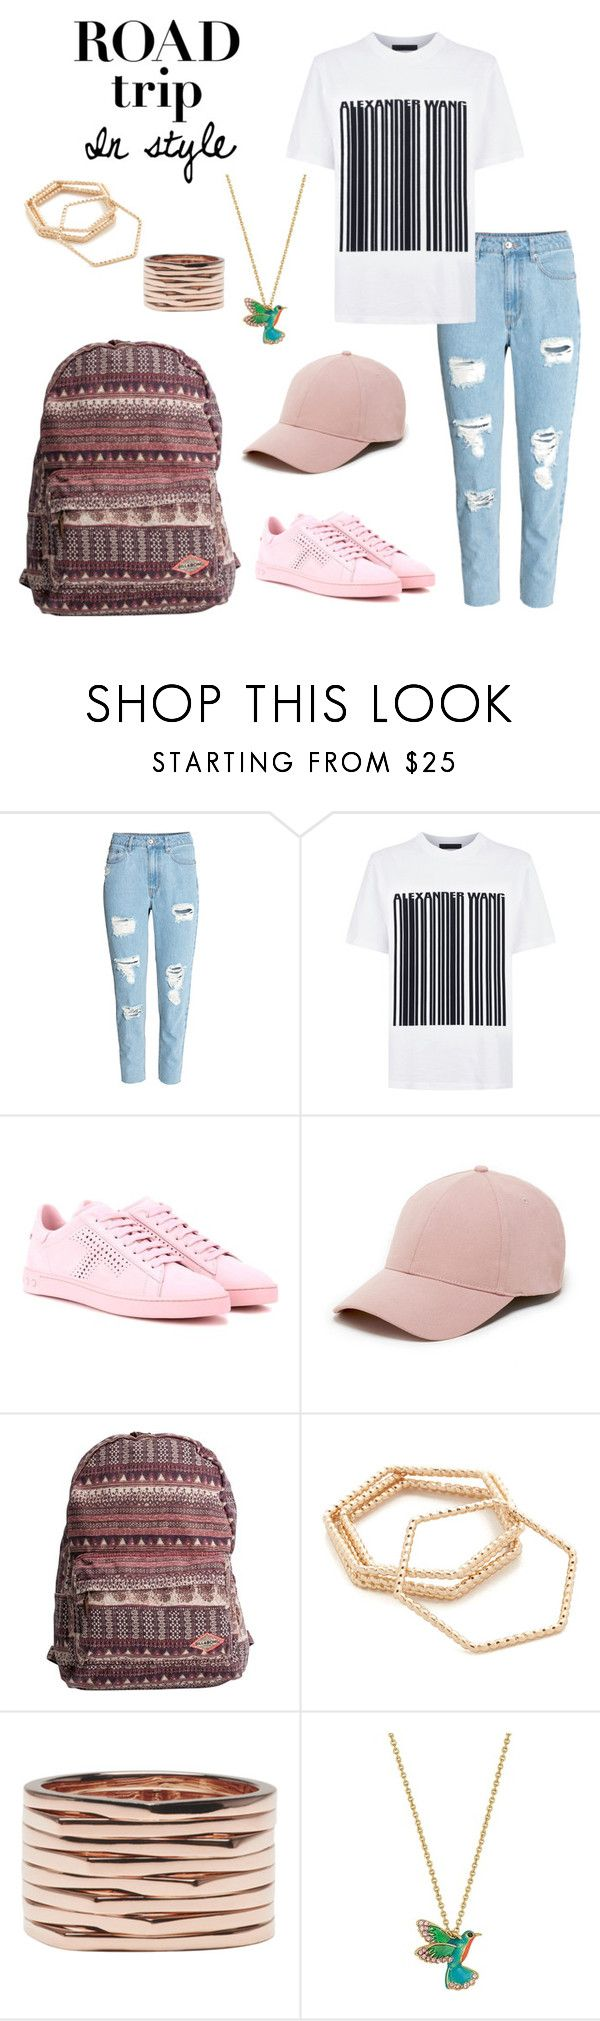 """""""Road Trip in Style"""" by windrasiregar on Polyvore featuring Alexander Wang, Tod's, Sole Society, Billabong, Shashi, Repossi and Kate Spade"""